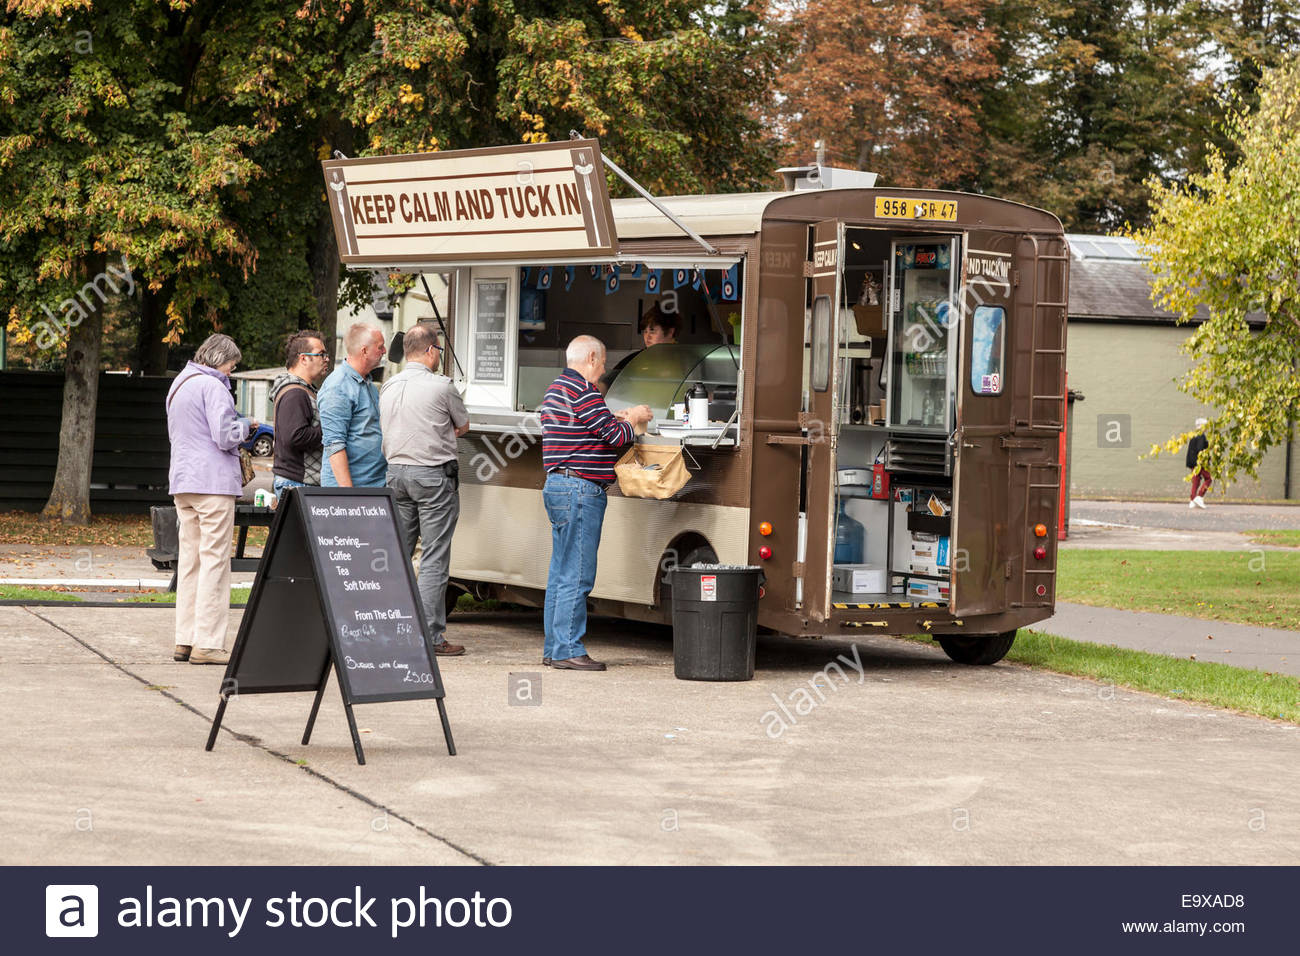 8a0e4b306f Mobile Catering Van Stock Photos   Mobile Catering Van Stock Images ...